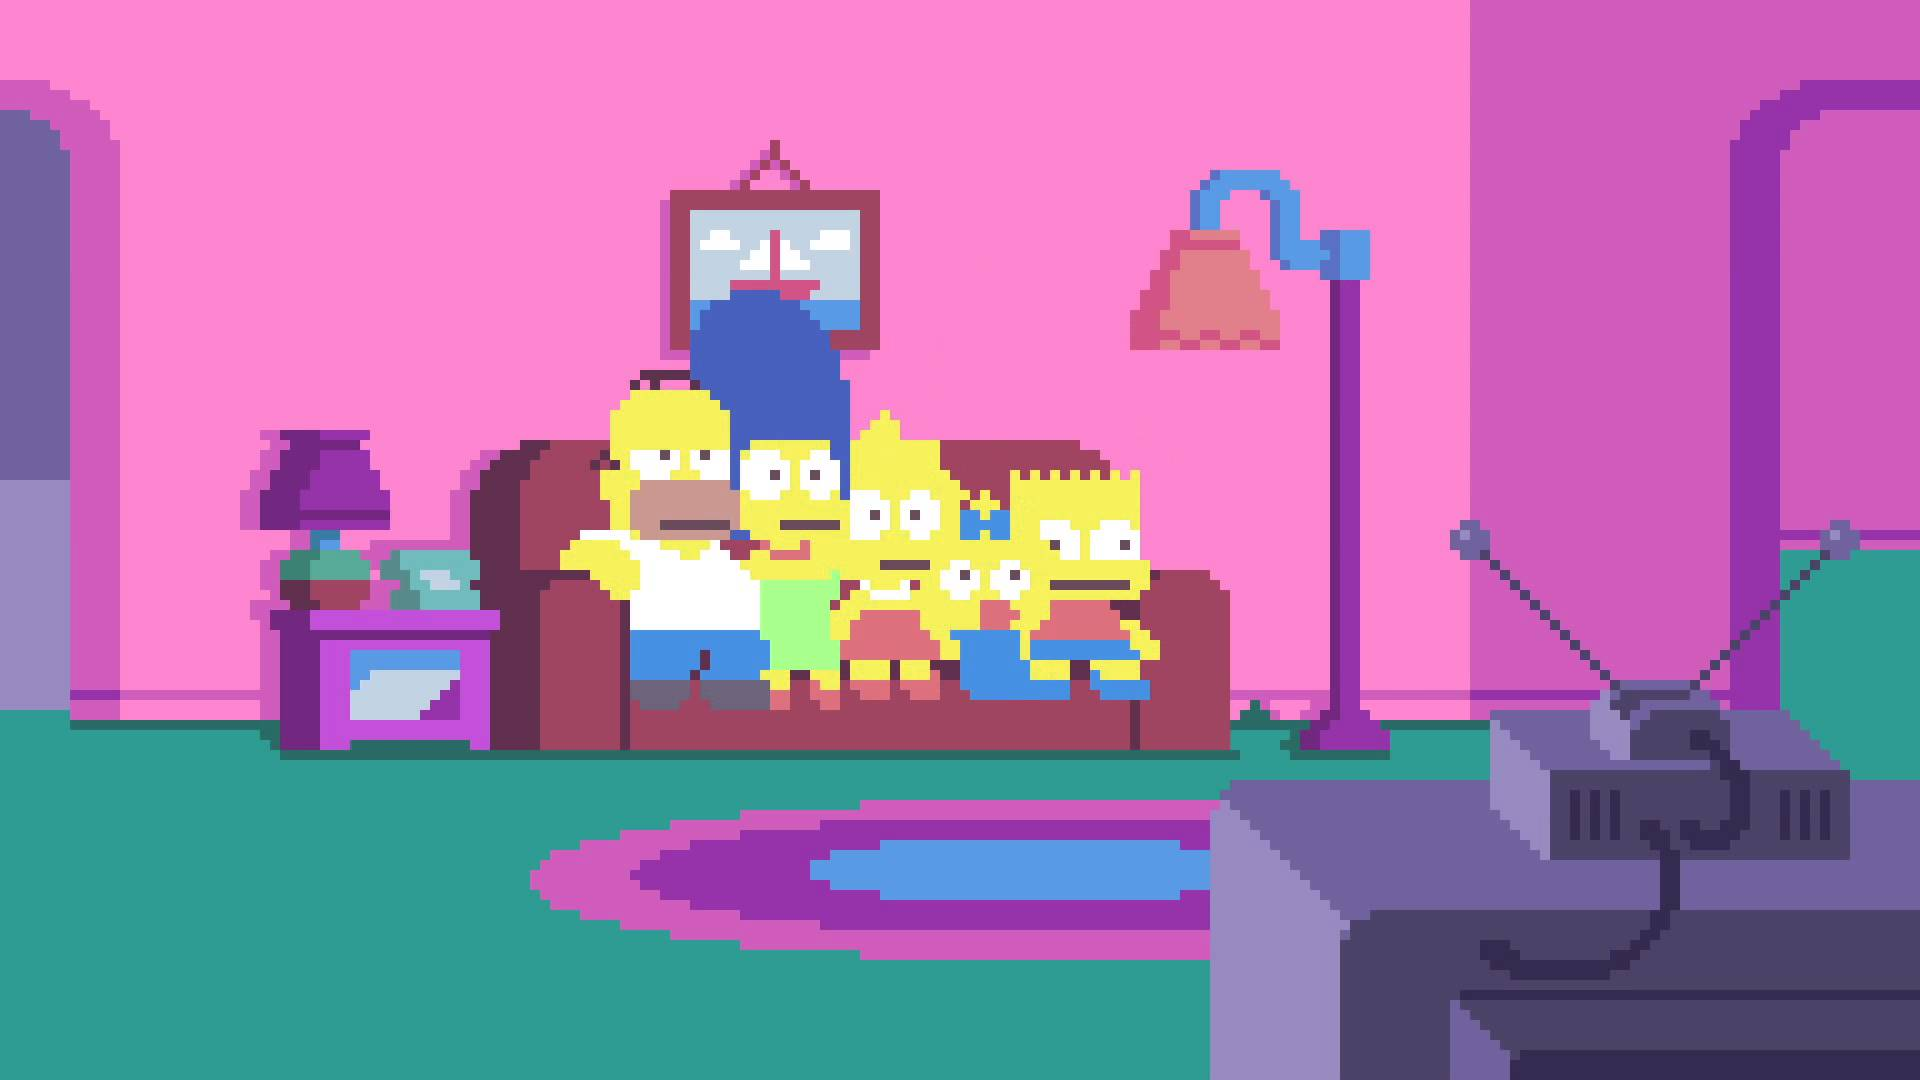 simpsons art #11